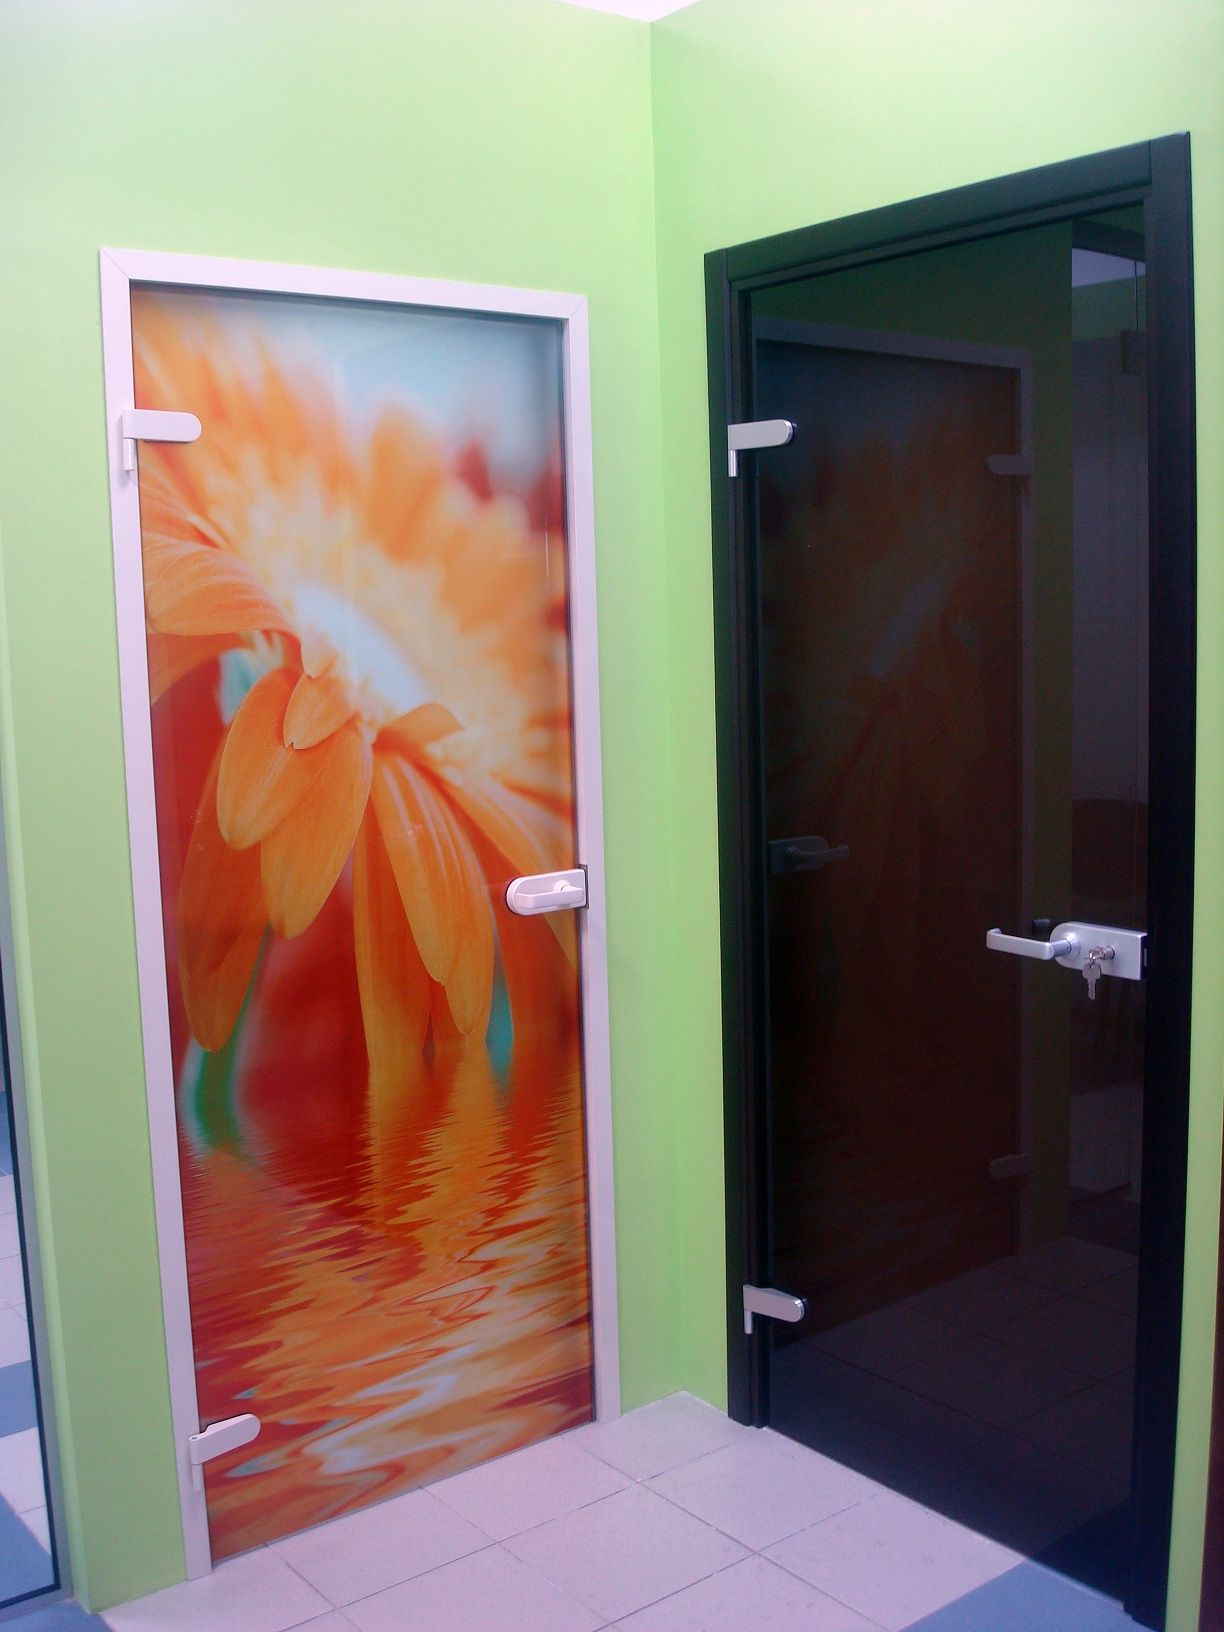 Orange glass door with flower pattern and brown glass interior door